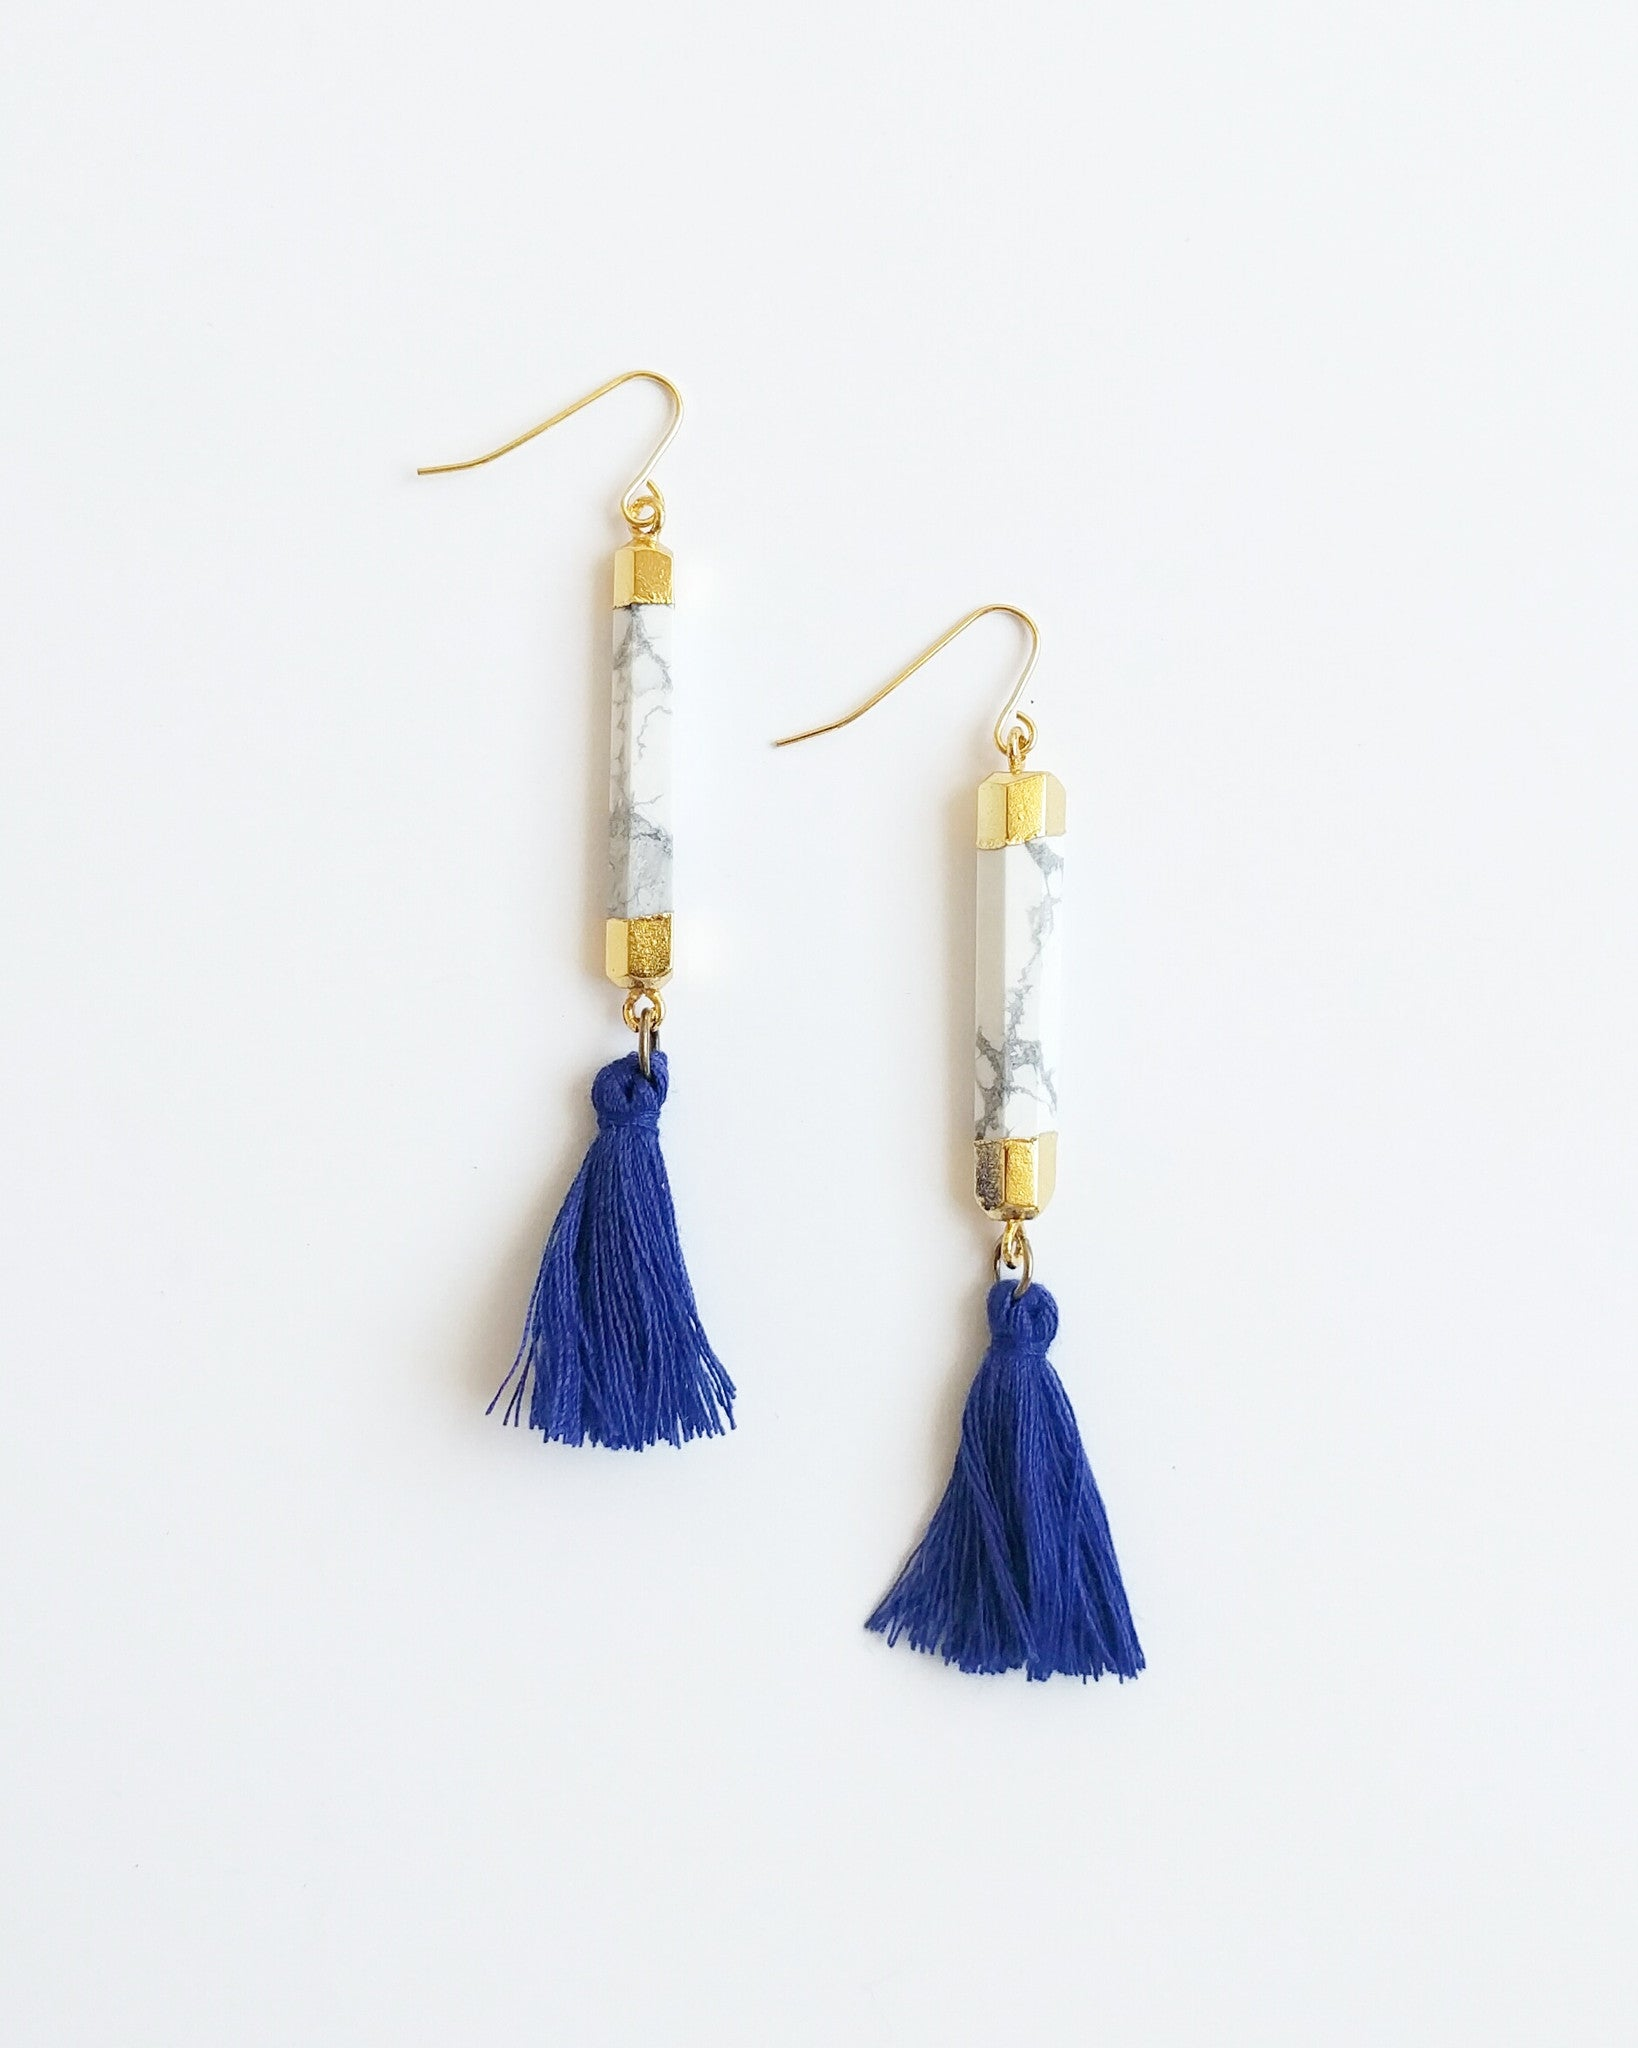 Elly Earrings || Choose Color